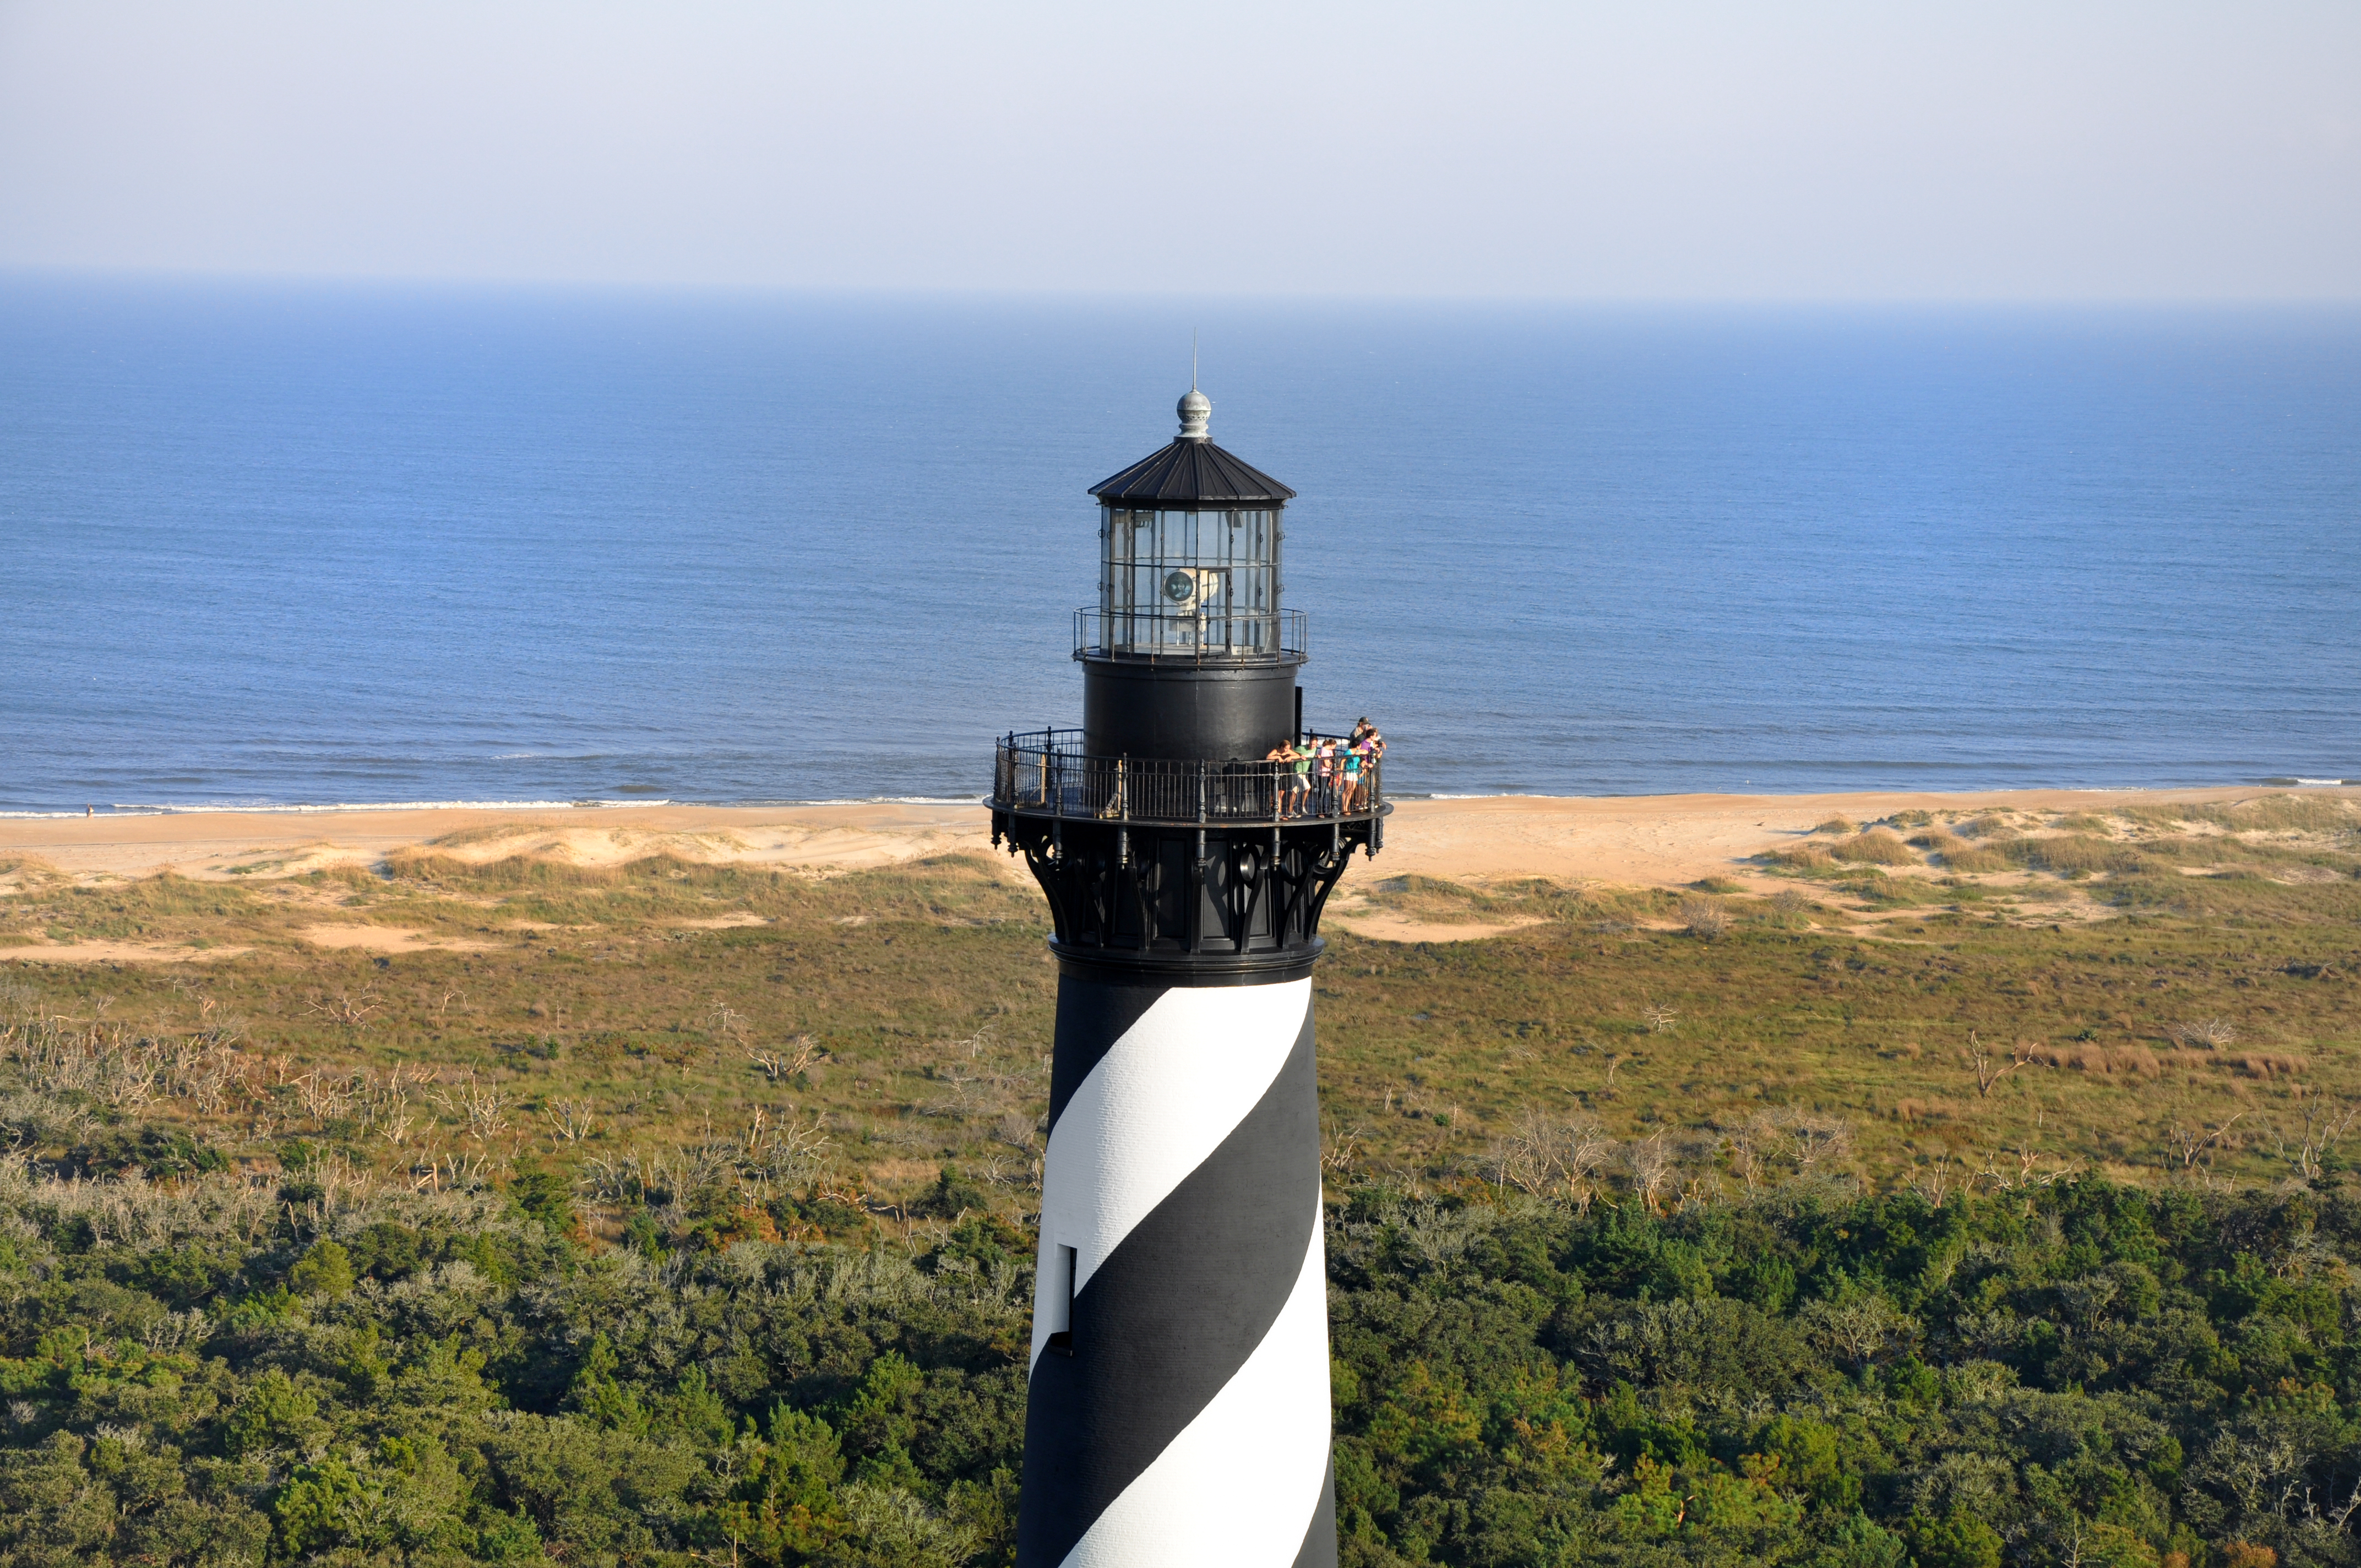 Hatteras Island The Outer Banks North Carolina Beach Getaways The Outer Banks North Carolina